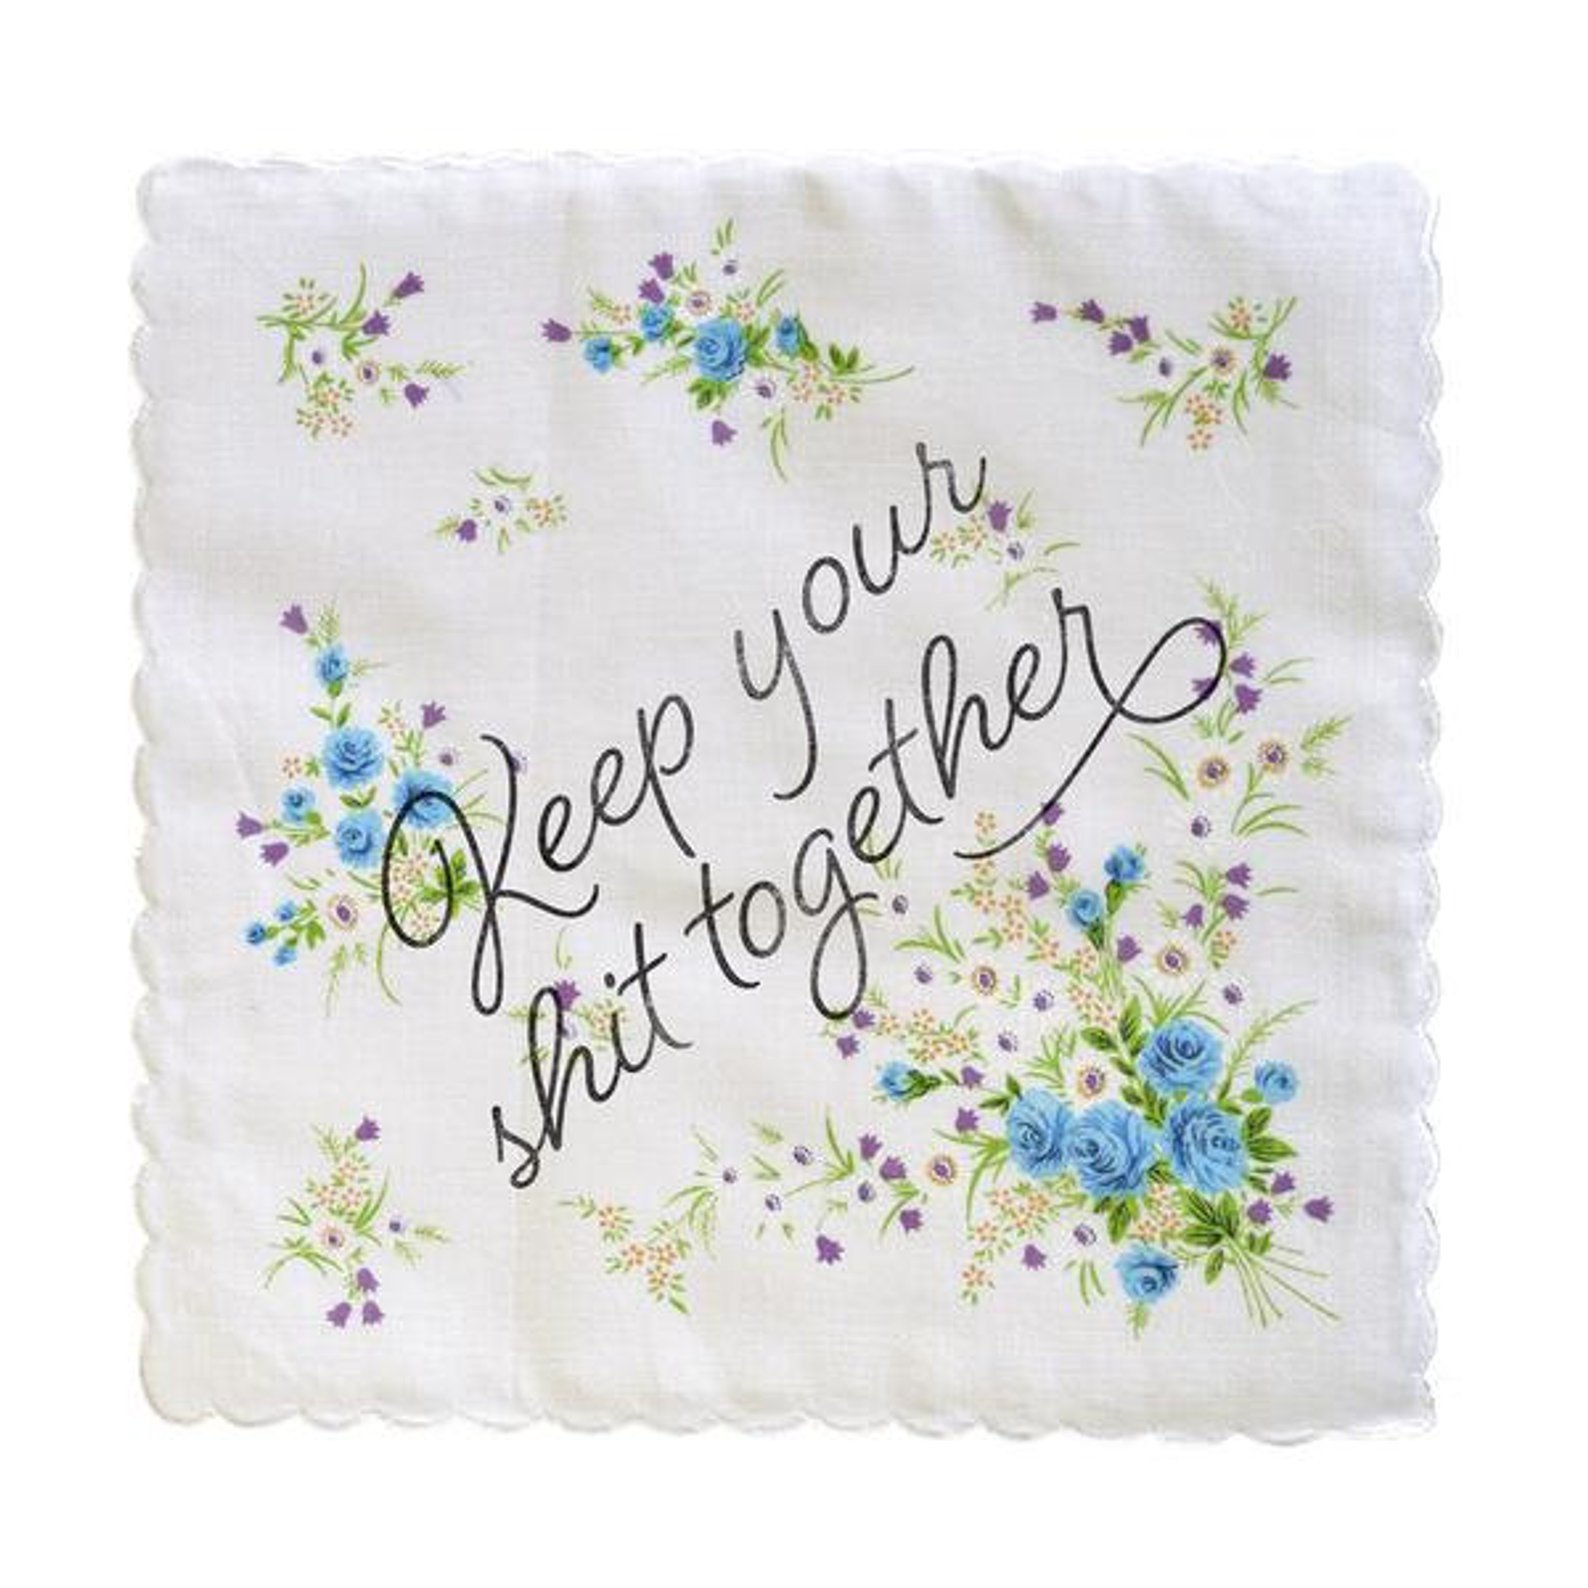 4. Something Blue Handkerchief - Keep this hanky close by for all the feels and as a not so subtle reminder to hold in the happy tears.